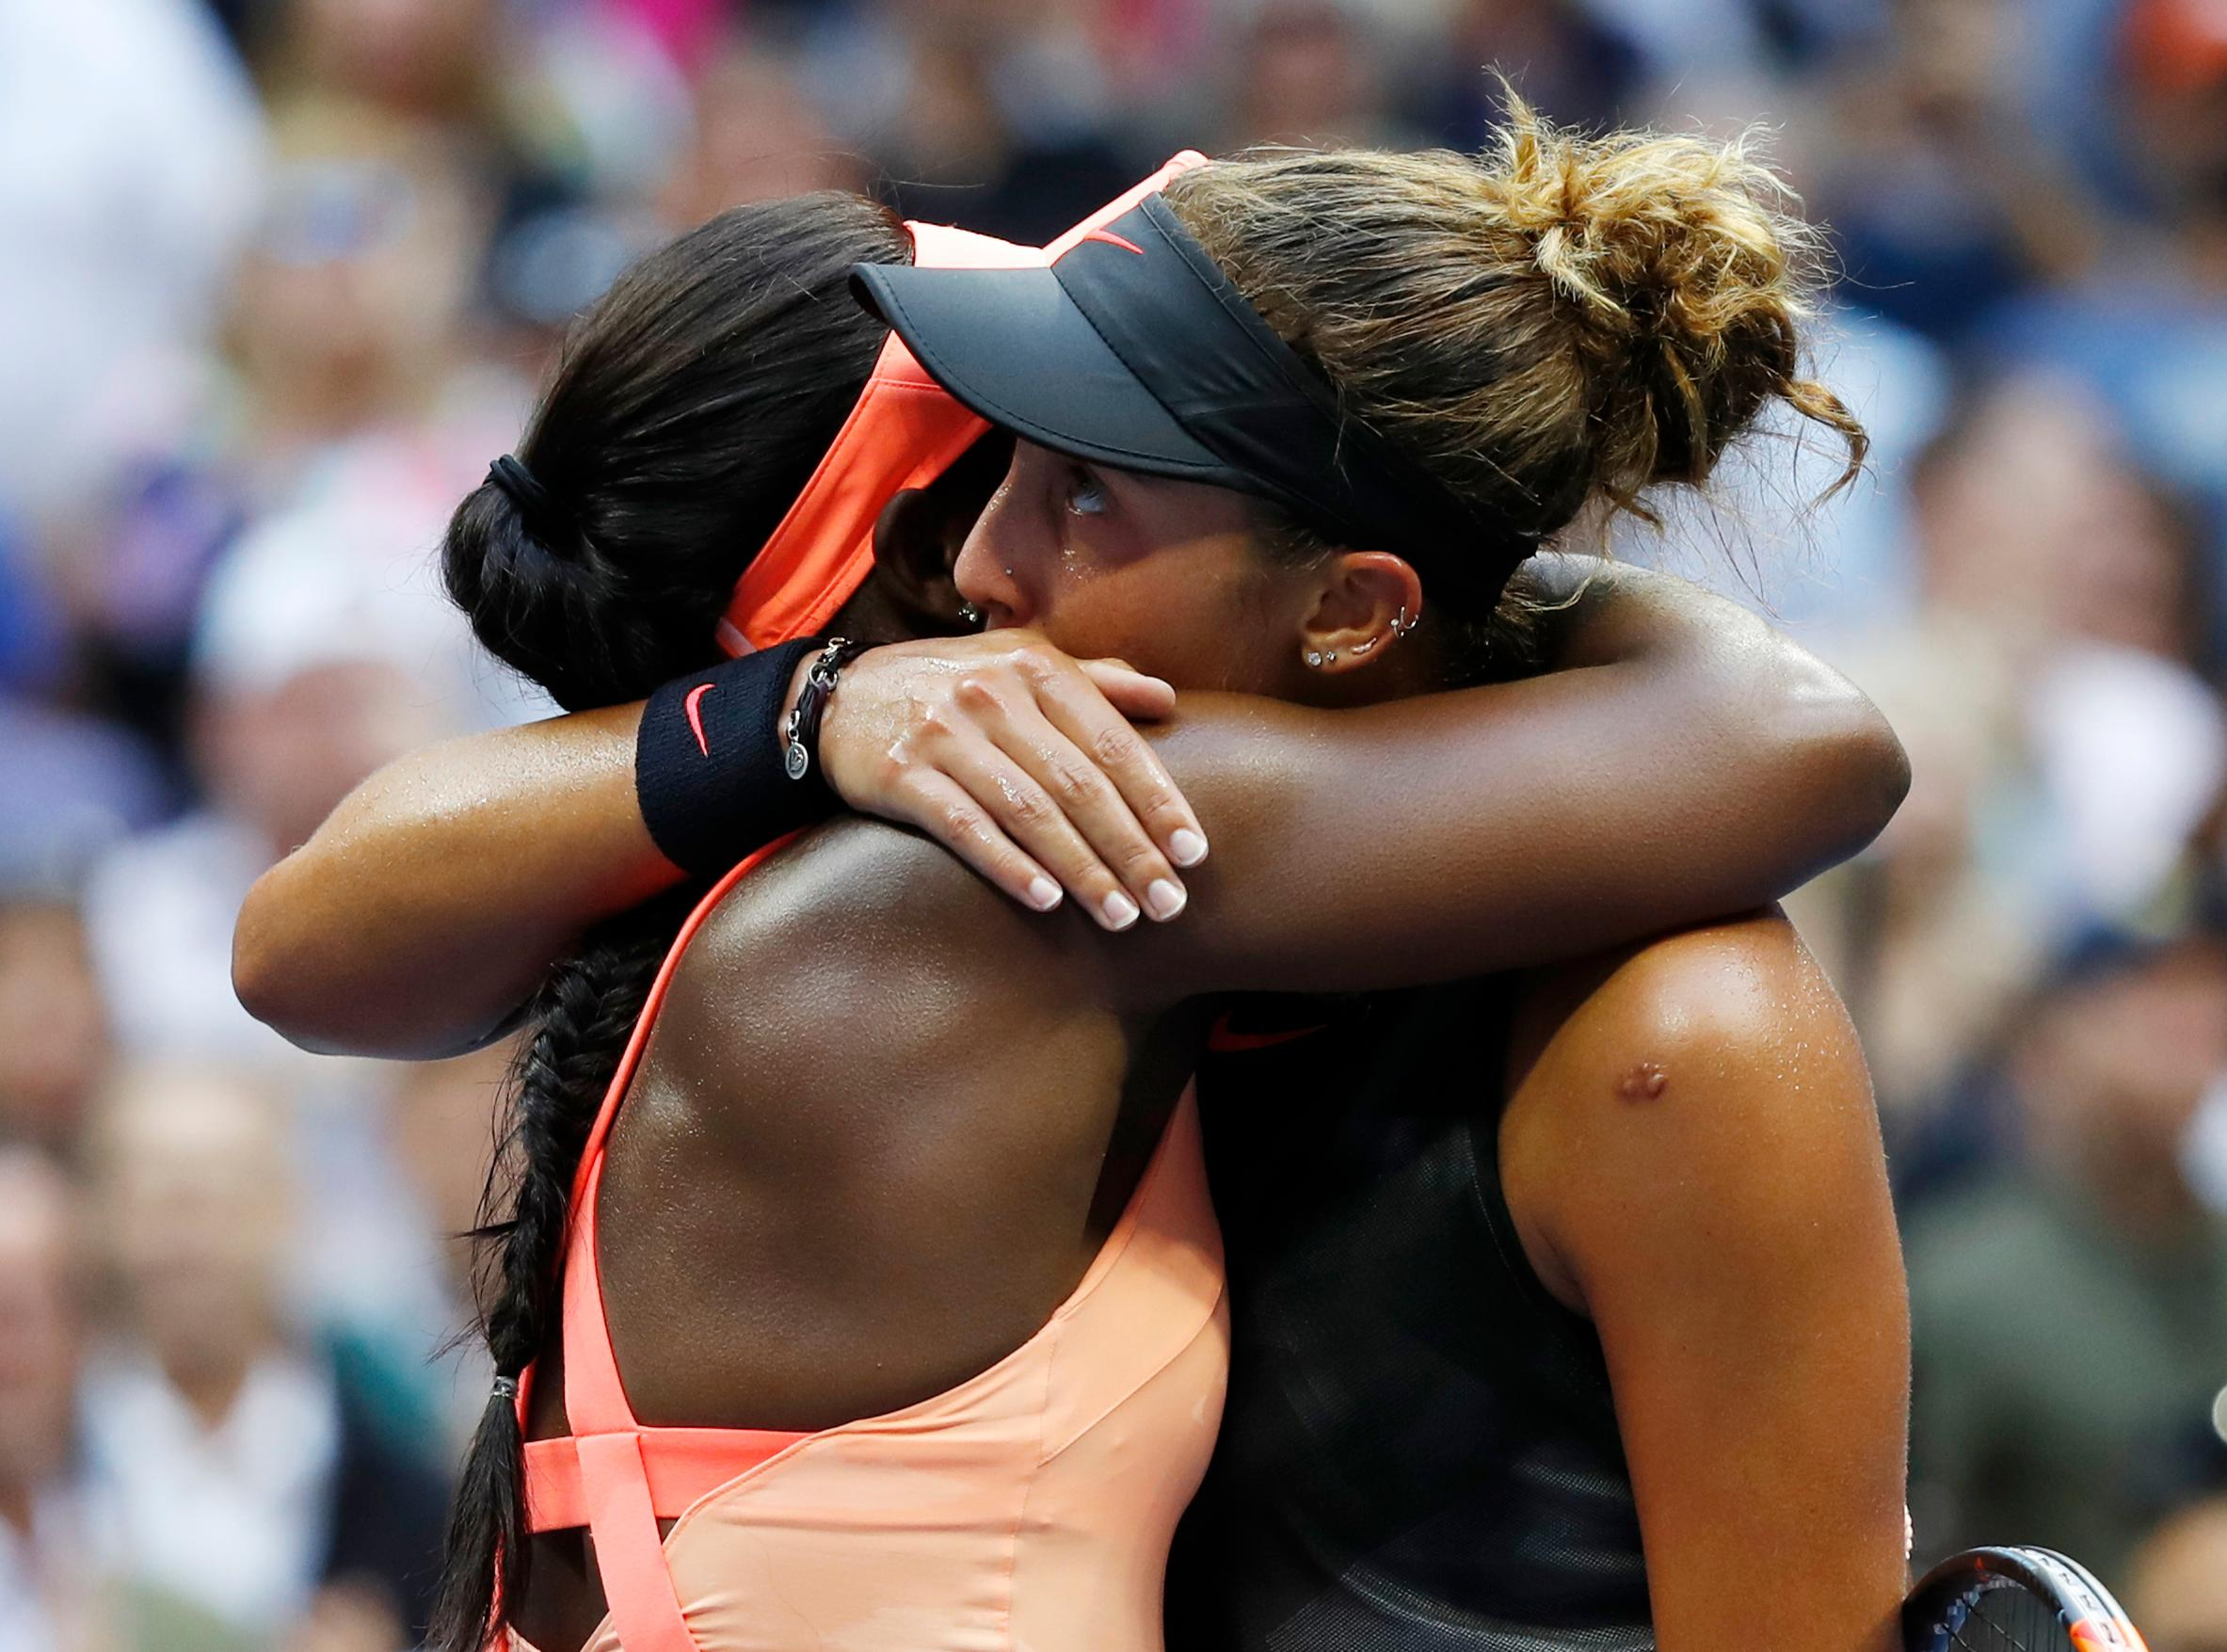 Sloane Stephens, of the United States, left, hugs Madison Keys, of the United States, after winning the women's singles final of the U.S. Open tennis tournament, Saturday, Sept. 9, 2017, in New York. (AP Photo/Adam Hunger)